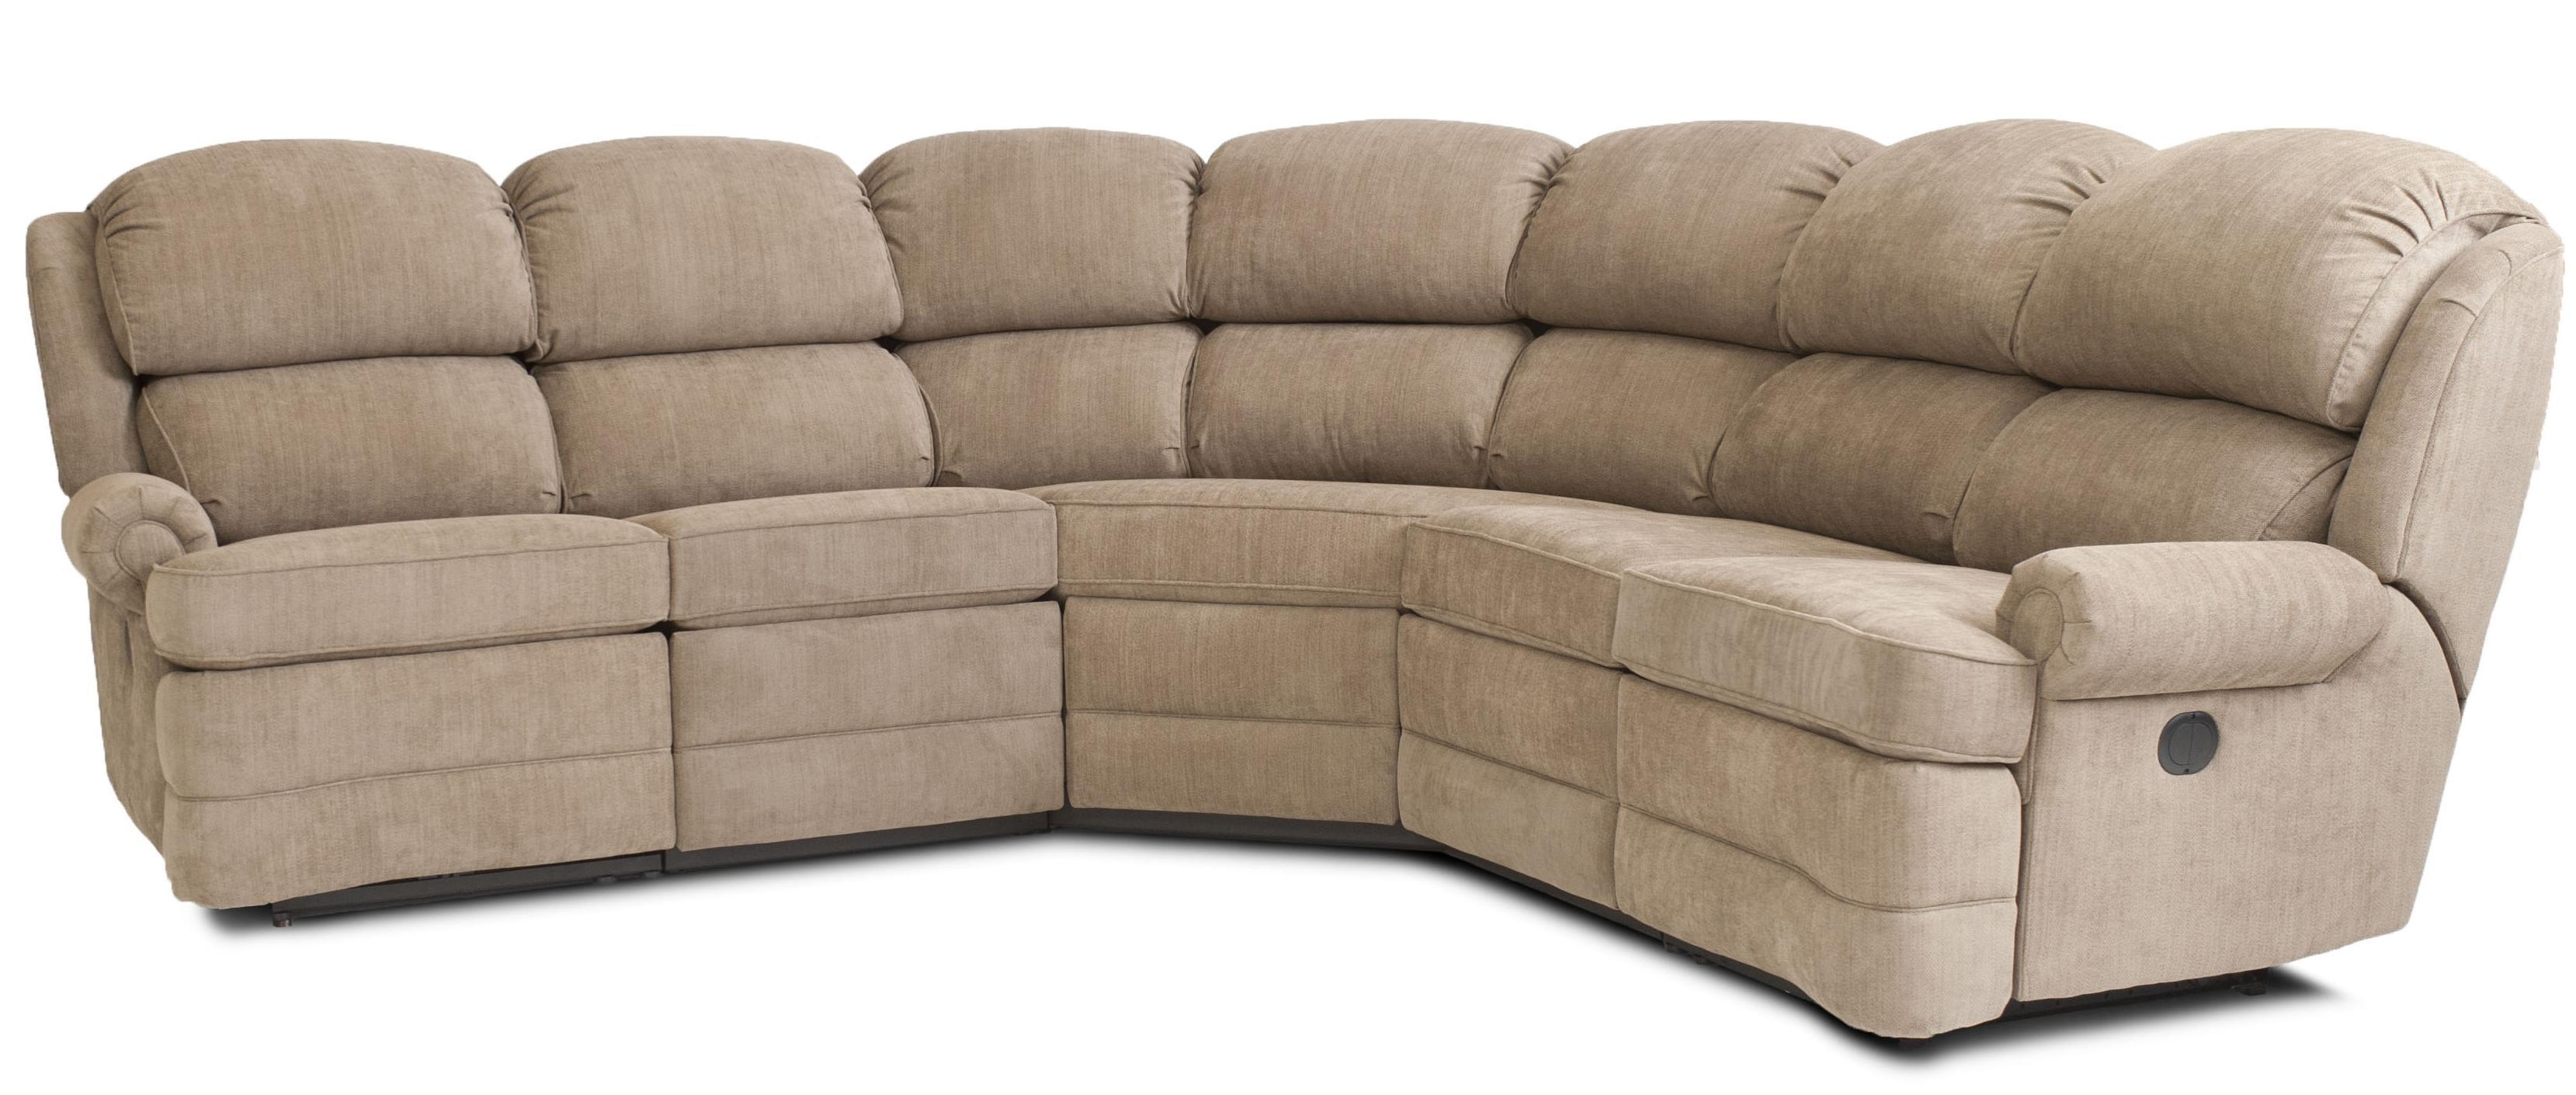 fabric sectional sofa with recliner natural latex bed mattress 20 ideas of jedd reclining